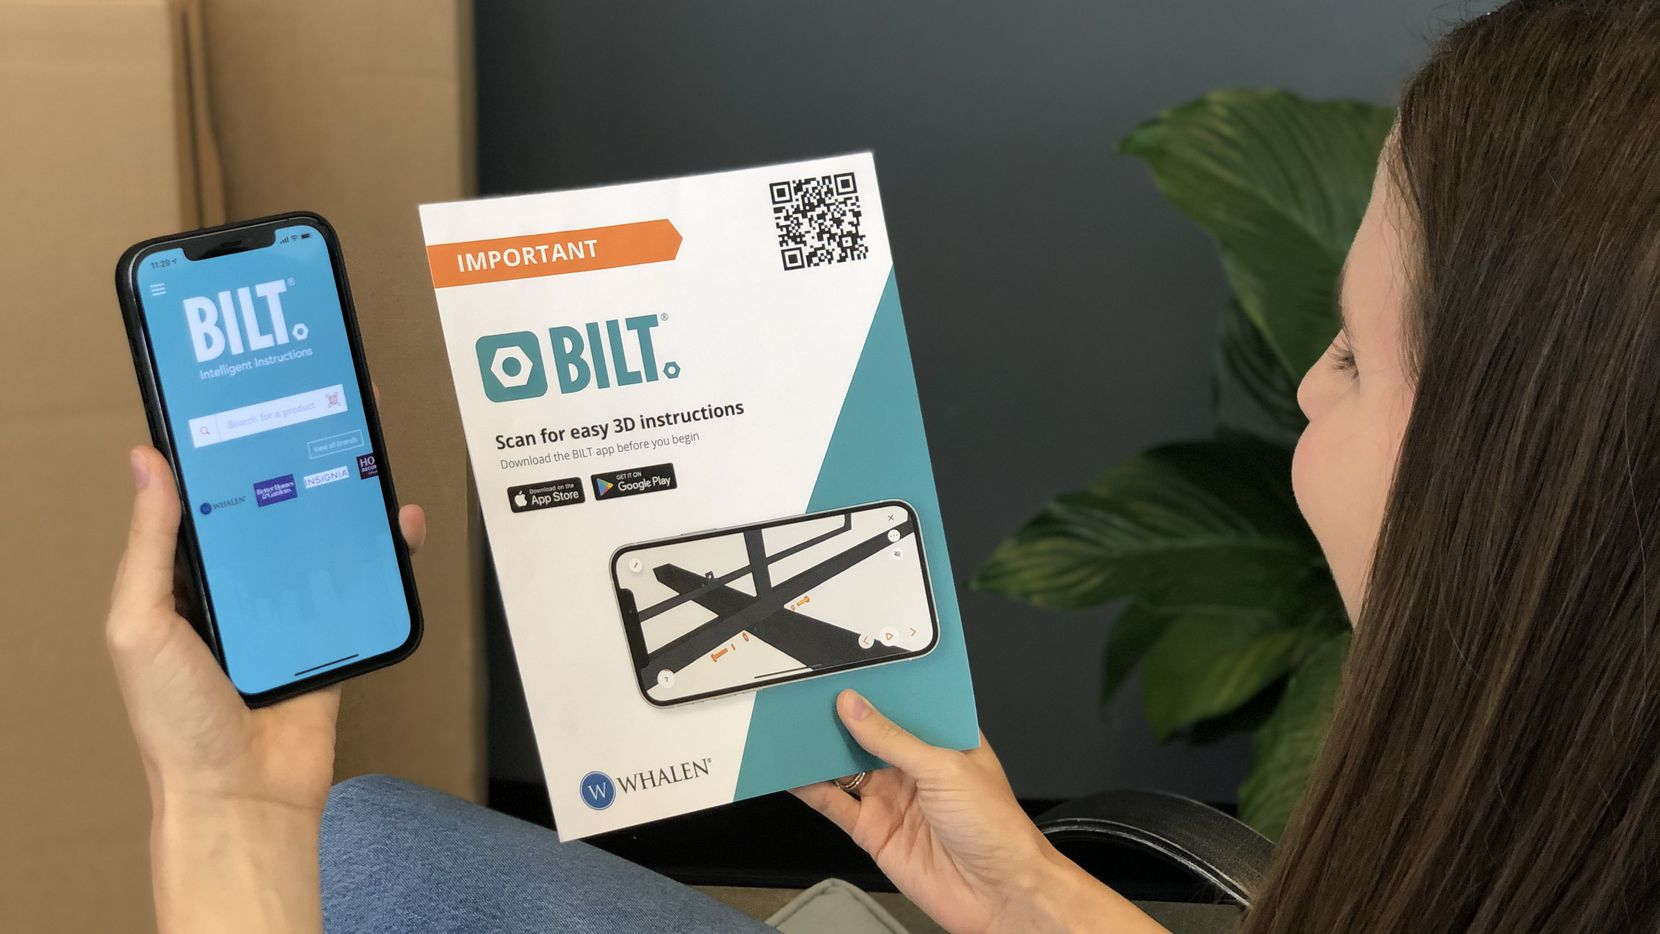 Consumers who buy an item with a BILT tutorial can scan a QR code and download an interactive tutorial for assembly.